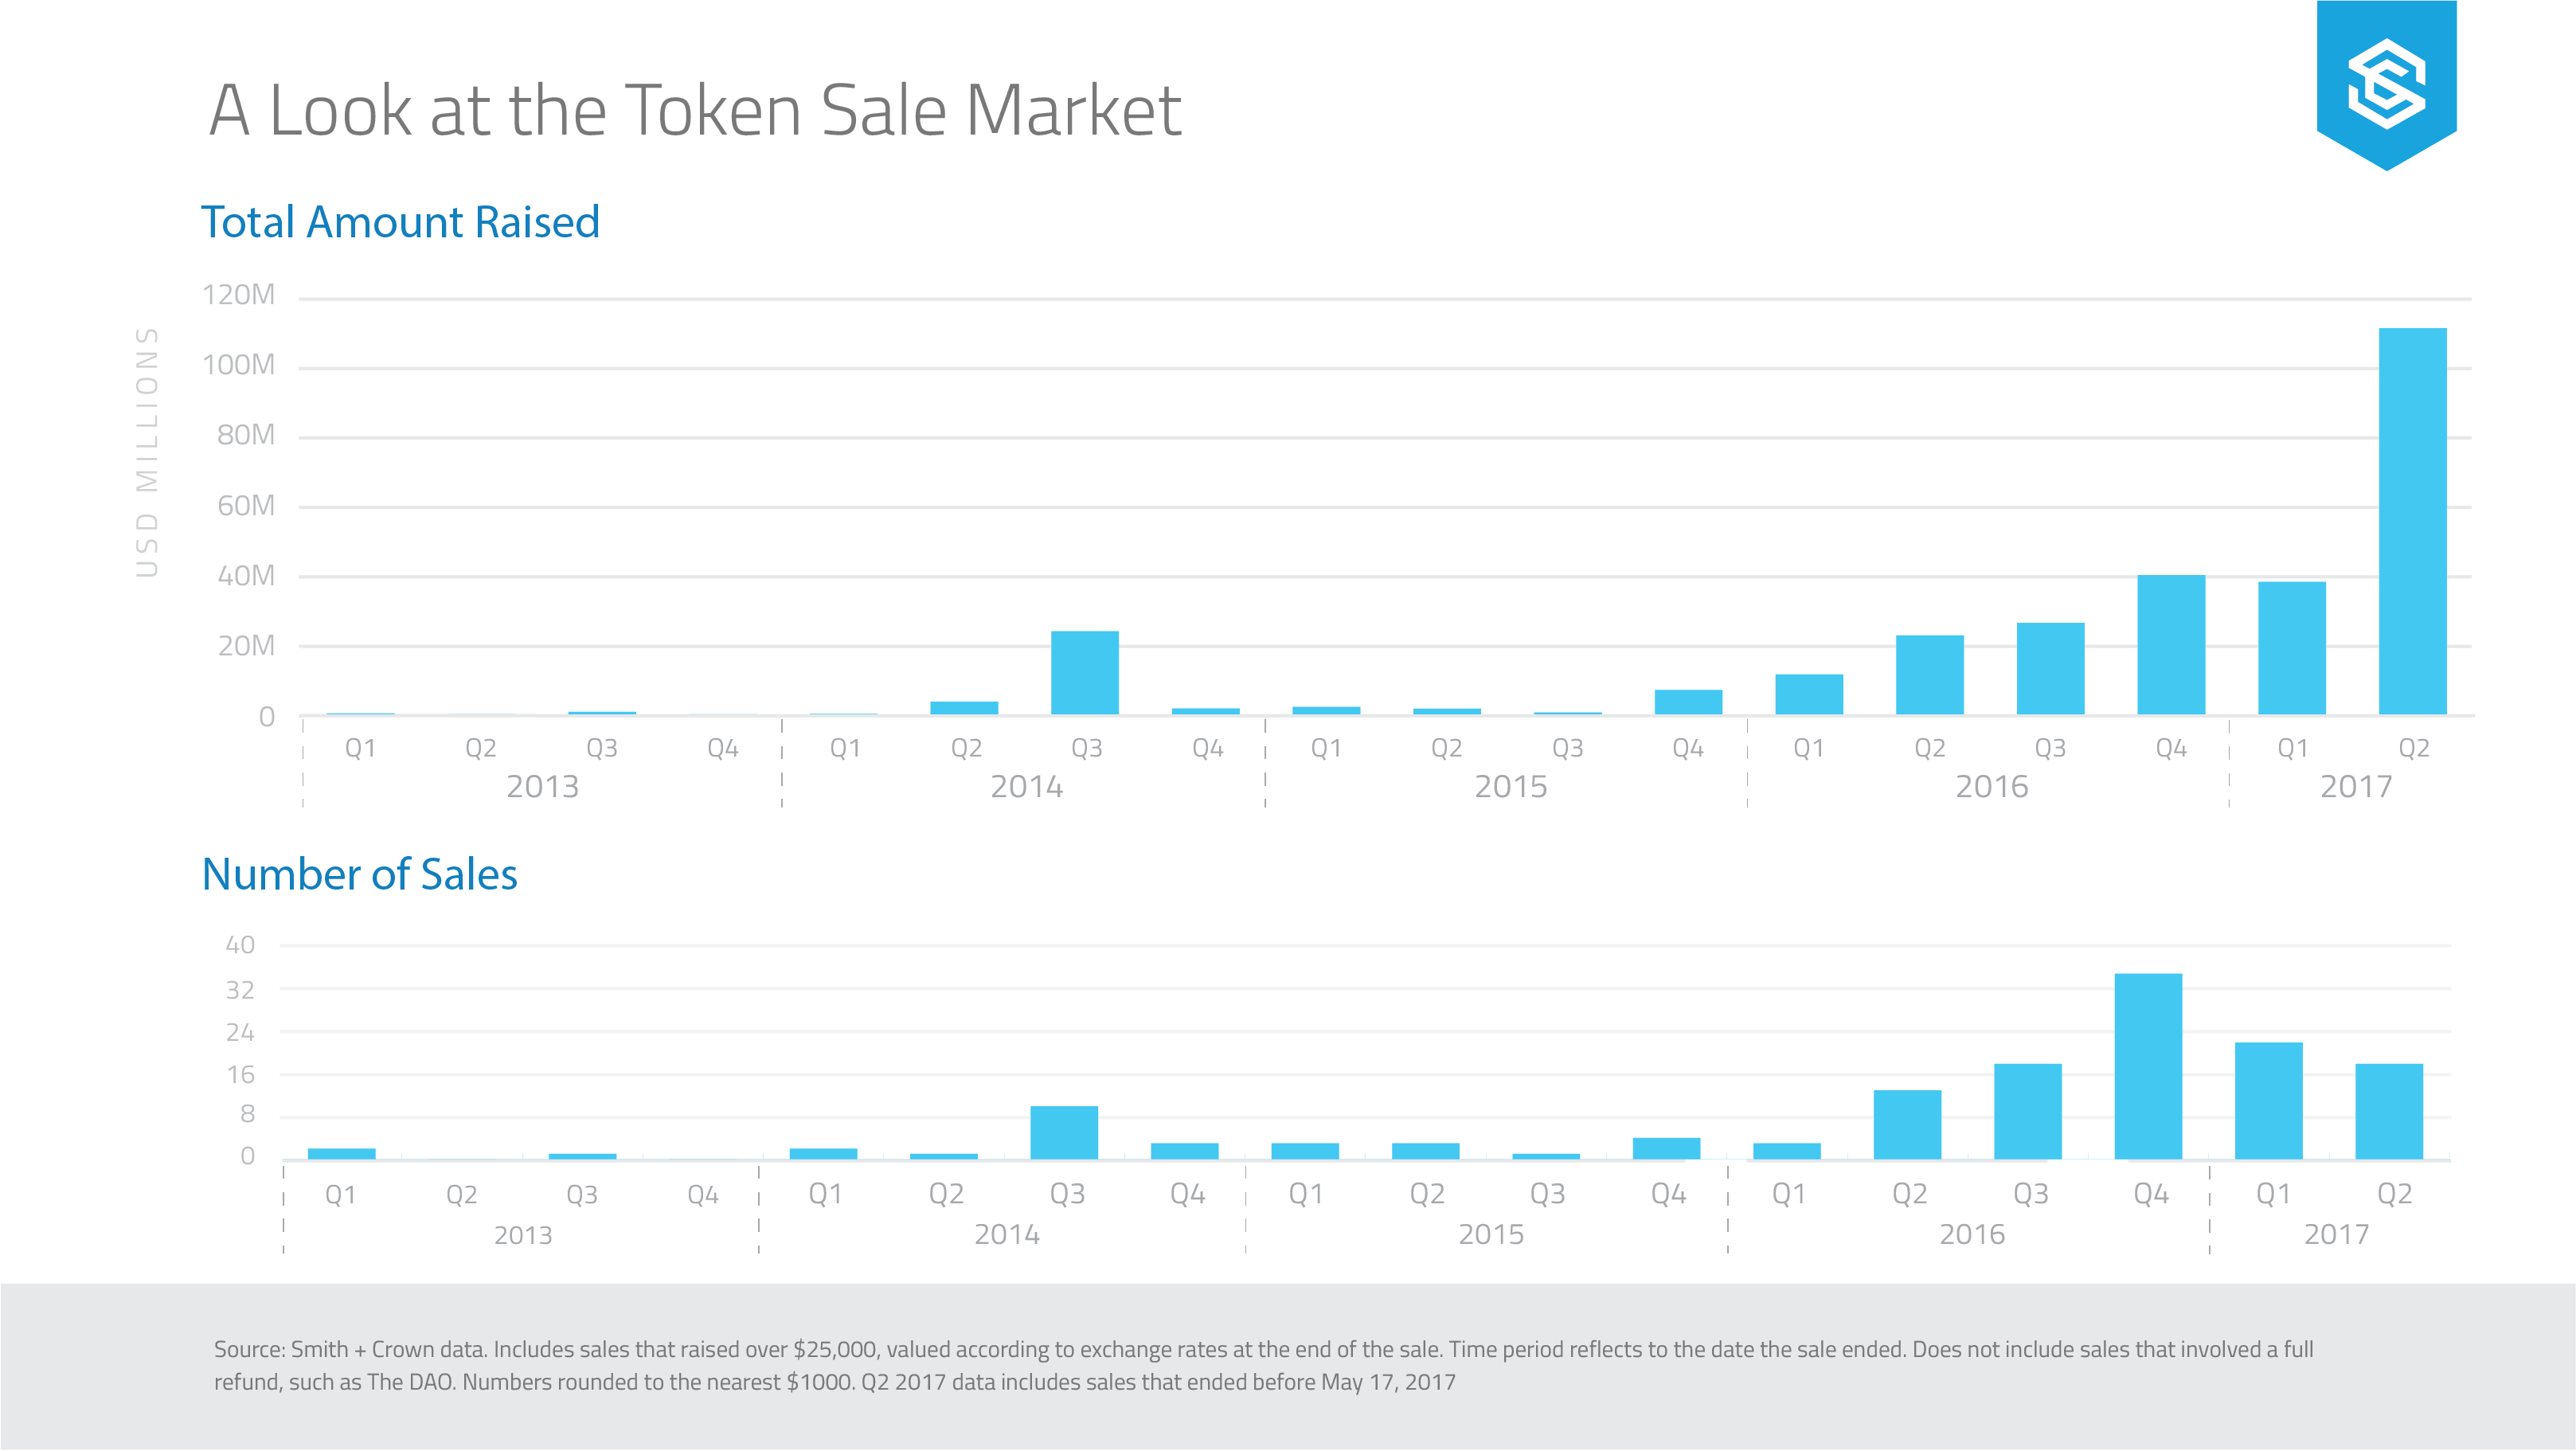 Token-Sale-Market-Overview (c) Smith & Crown